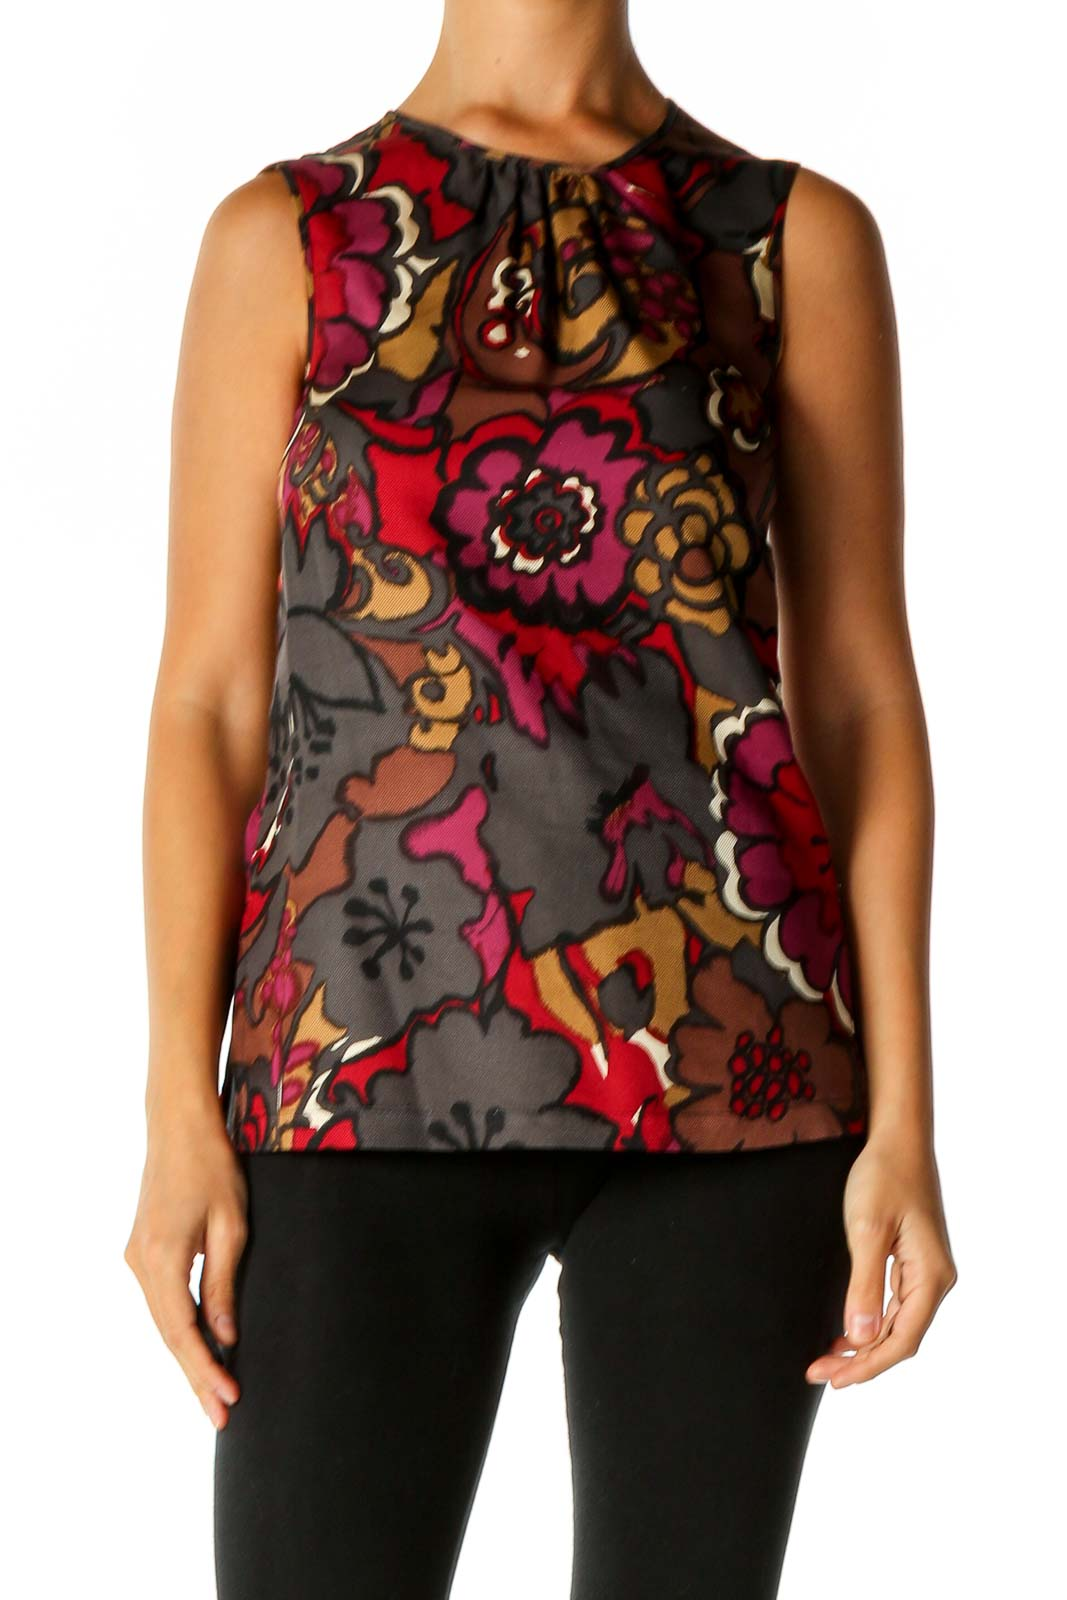 Brown Graphic Print Chic Blouse Front